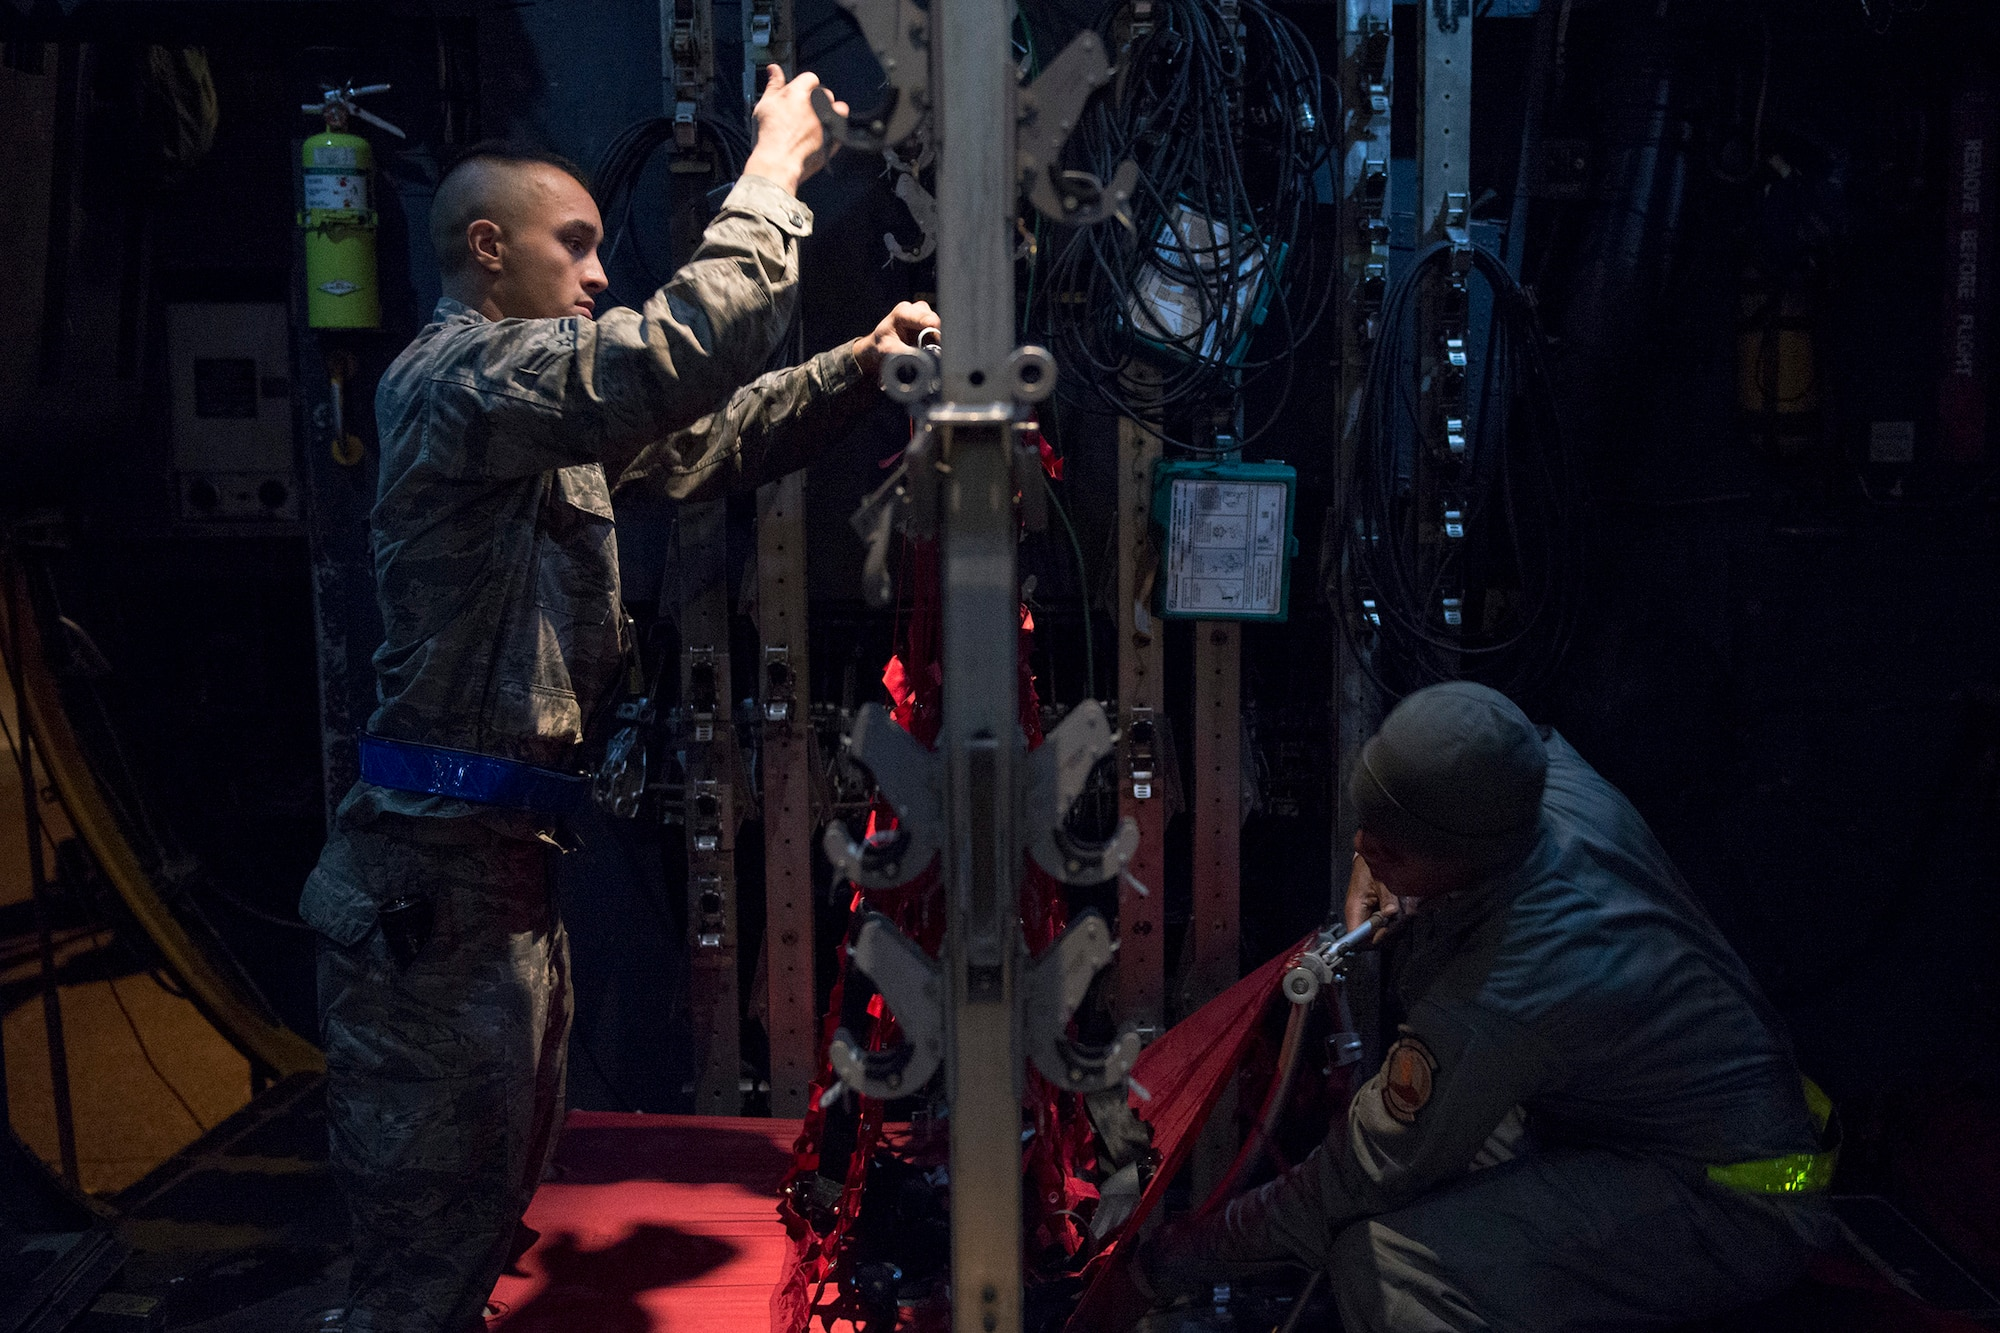 Airmen prepare seating in a C-130 Hercules during Vigilant Ace 16 at Yokota Air Base, Japan, Nov. 2, 2015. Multiple C-130s were inspected, reconfigured and fueled in preparation of flights for Vigilant Ace, a U.S. and South Korea combined exercise aimed at enhancing operational and tactical level coordination through combined and joint combat training. The exercise also provided critical training for the Airmen of the 374th Airlift Wing to maintain peace and stability in Japan and the entire Indo-Asia Pacific region. (U.S. Air Force photo/Staff Sgt. Cody H. Ramirez)